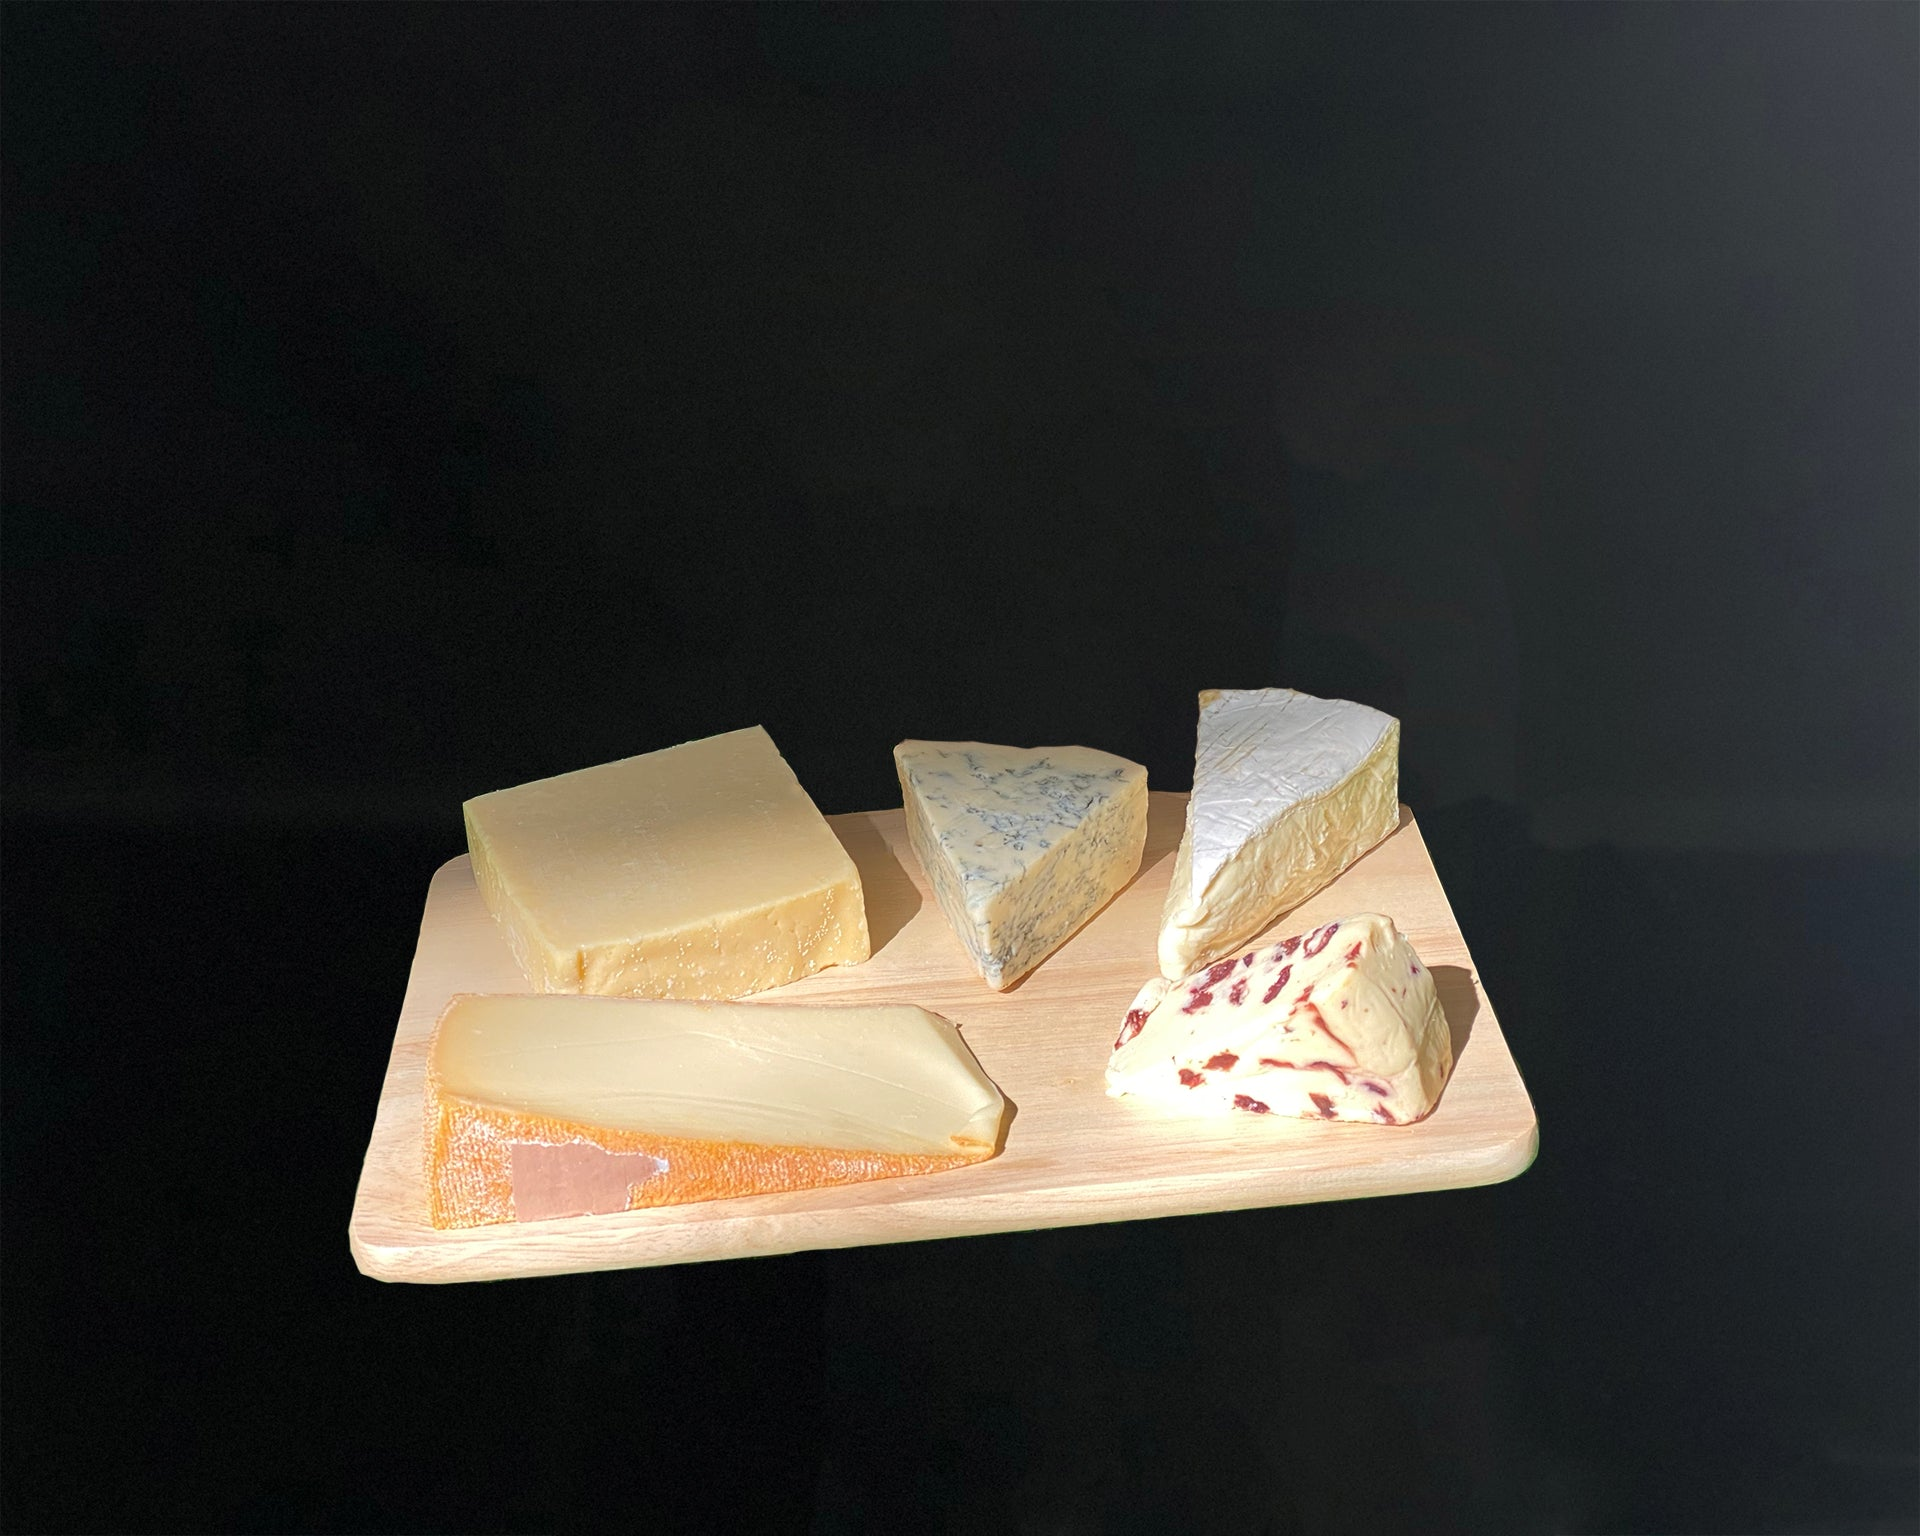 Matthews Cheese - Eclectic Selection - Raclette, Blue, Creamy and Aromatic